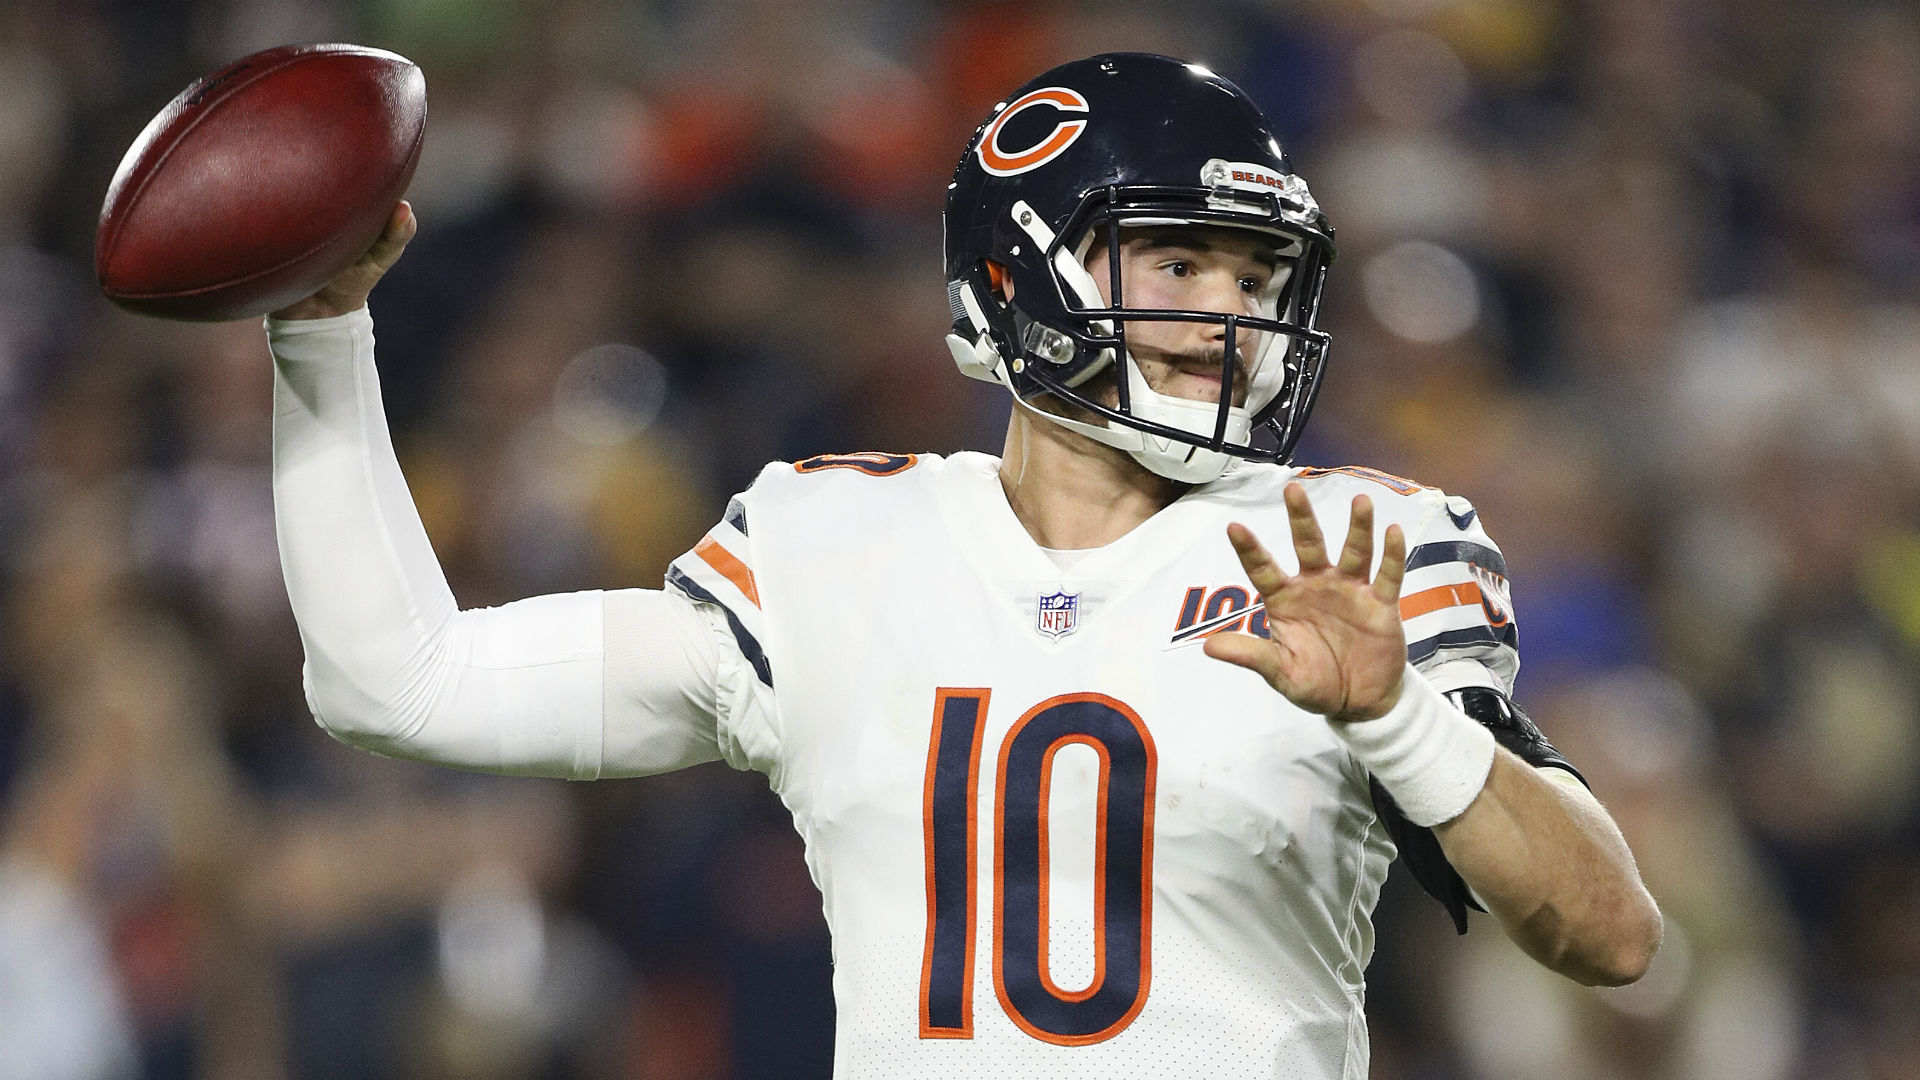 Mitchell Trubisky motivated by Bears bringing in Nick Foles: 'It's a business decision' 1